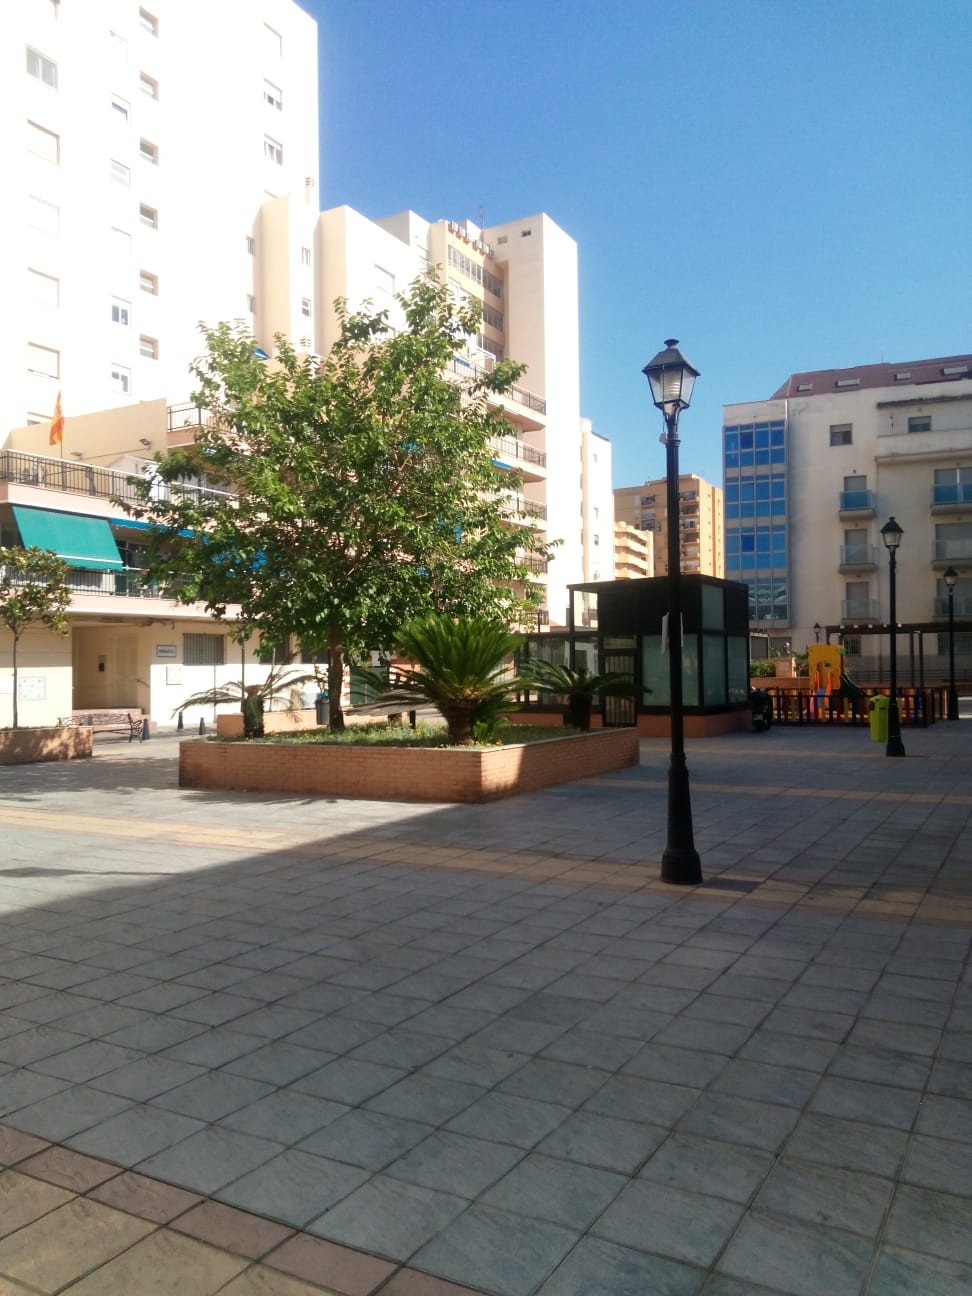 R3205816: Commercial for sale in Fuengirola